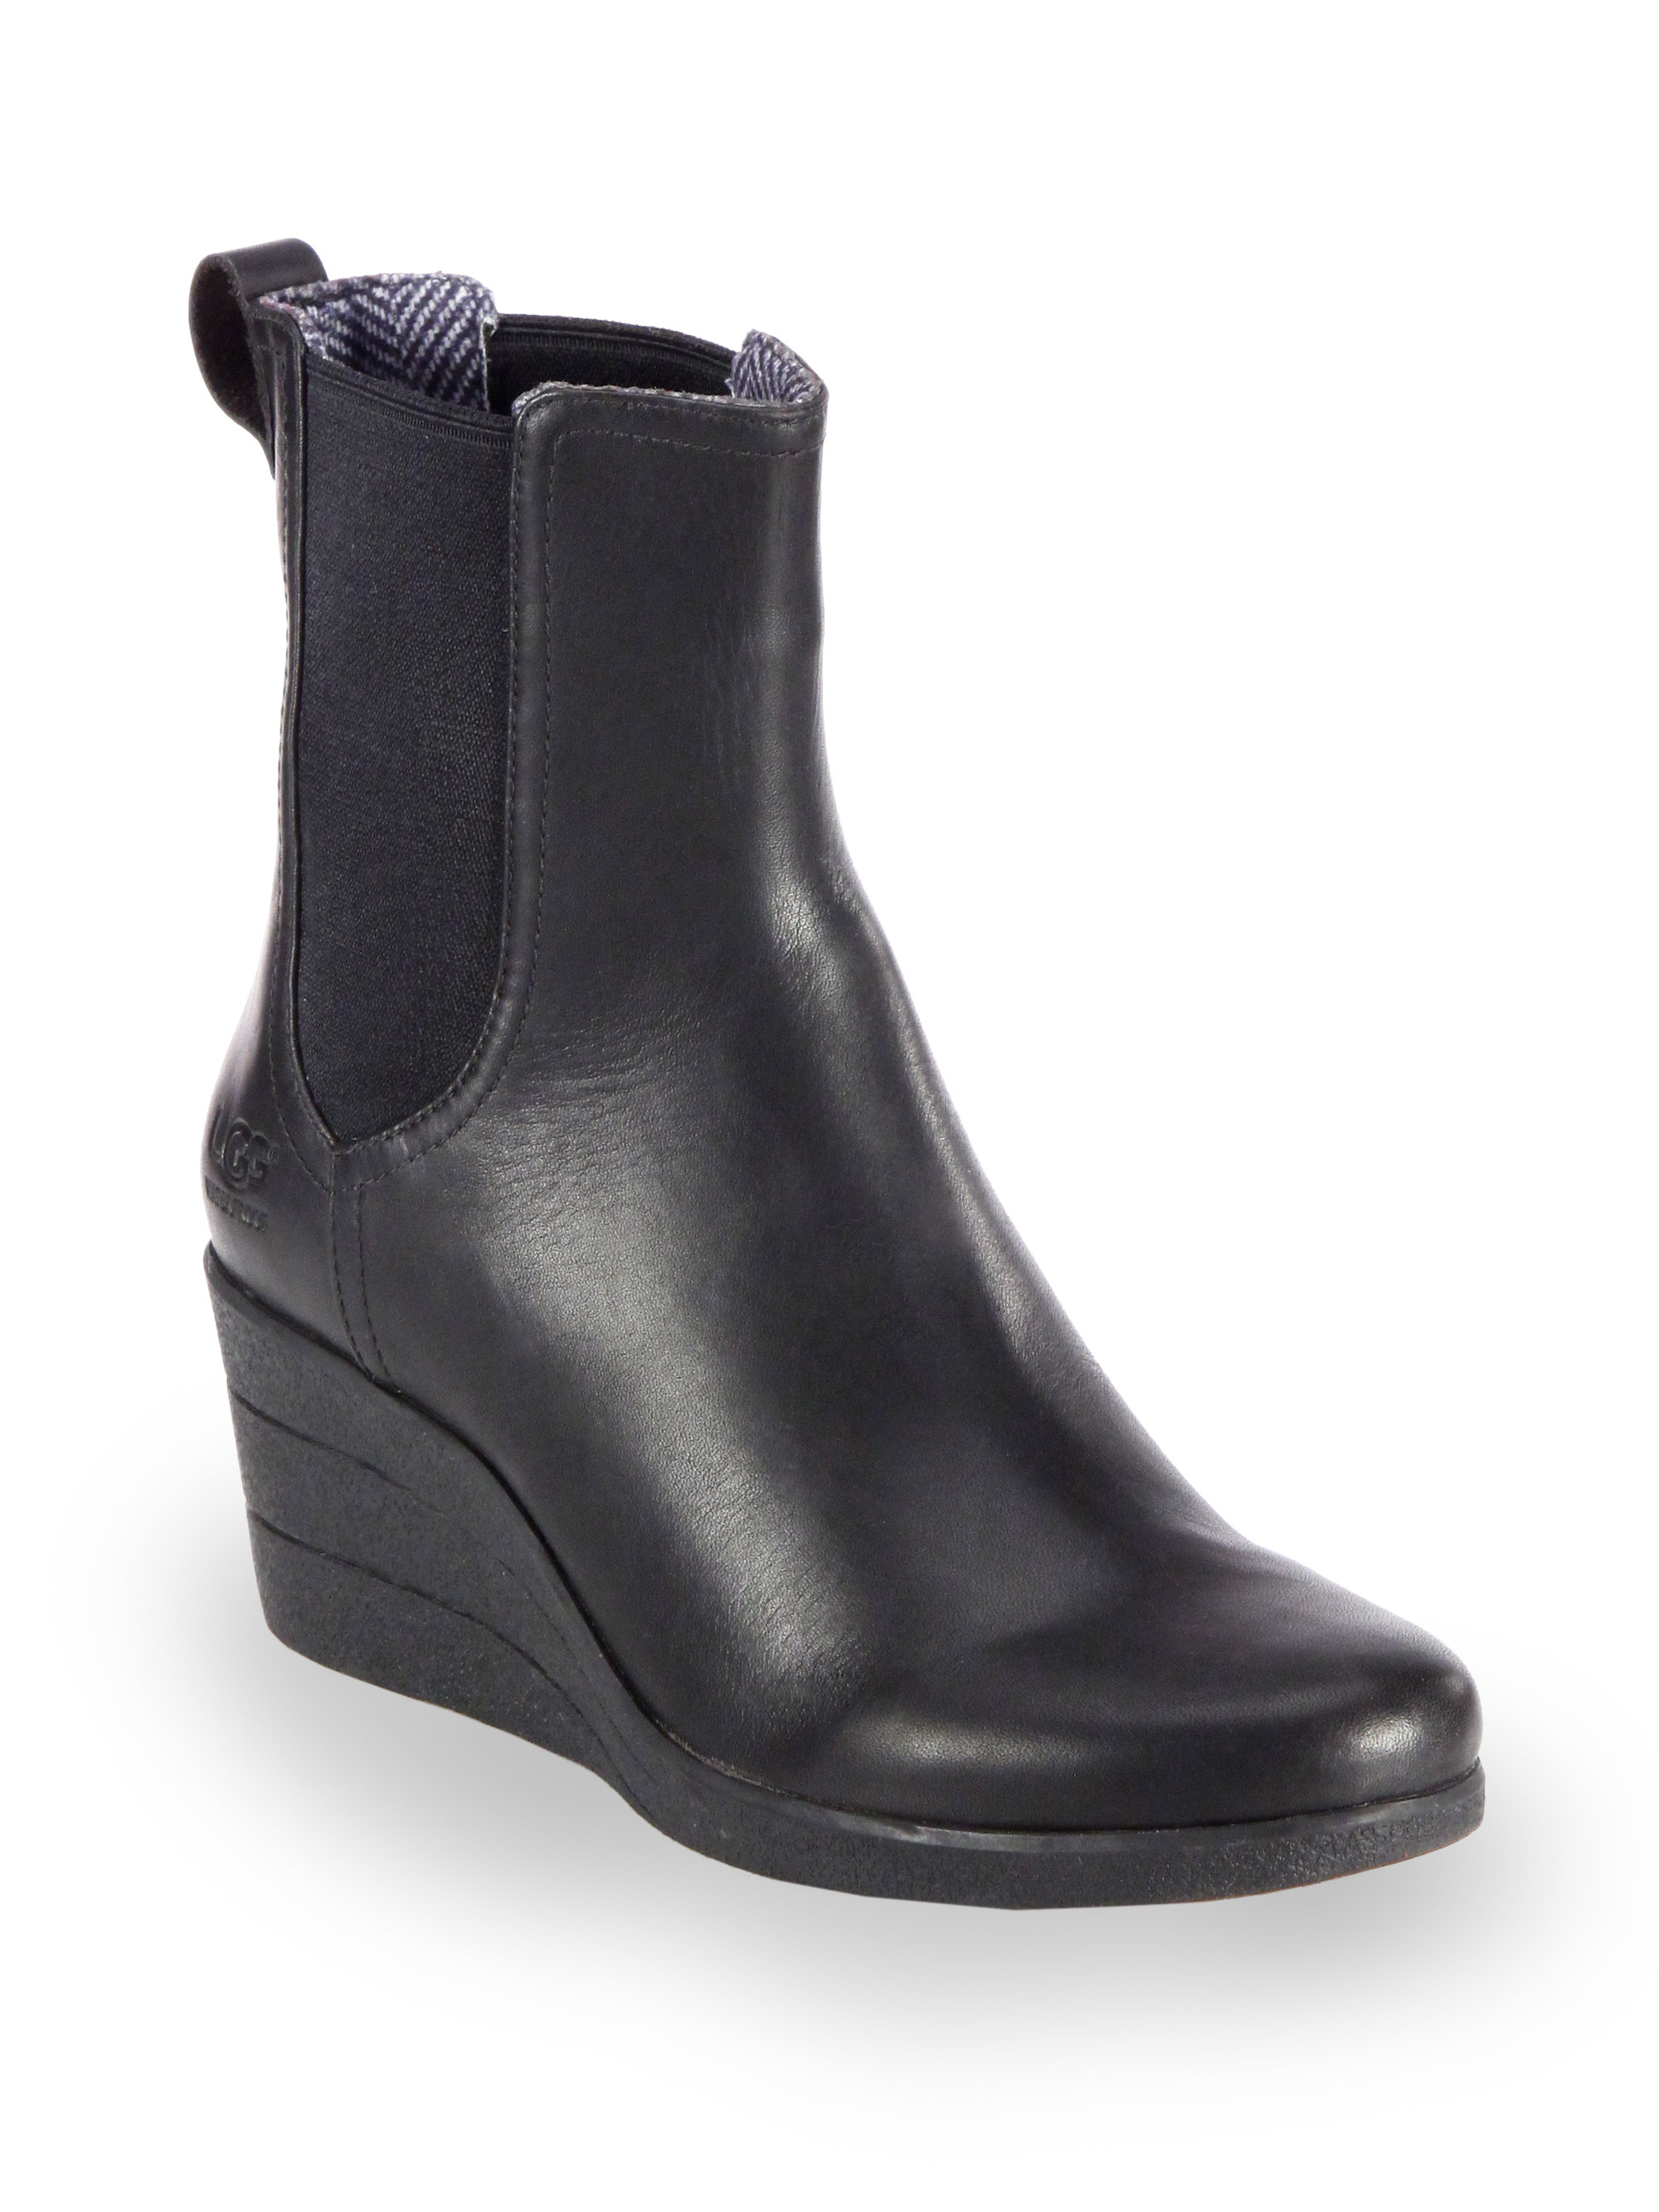 Ugg Dupre Leather Wedge Ankle Boots in Black | Lyst